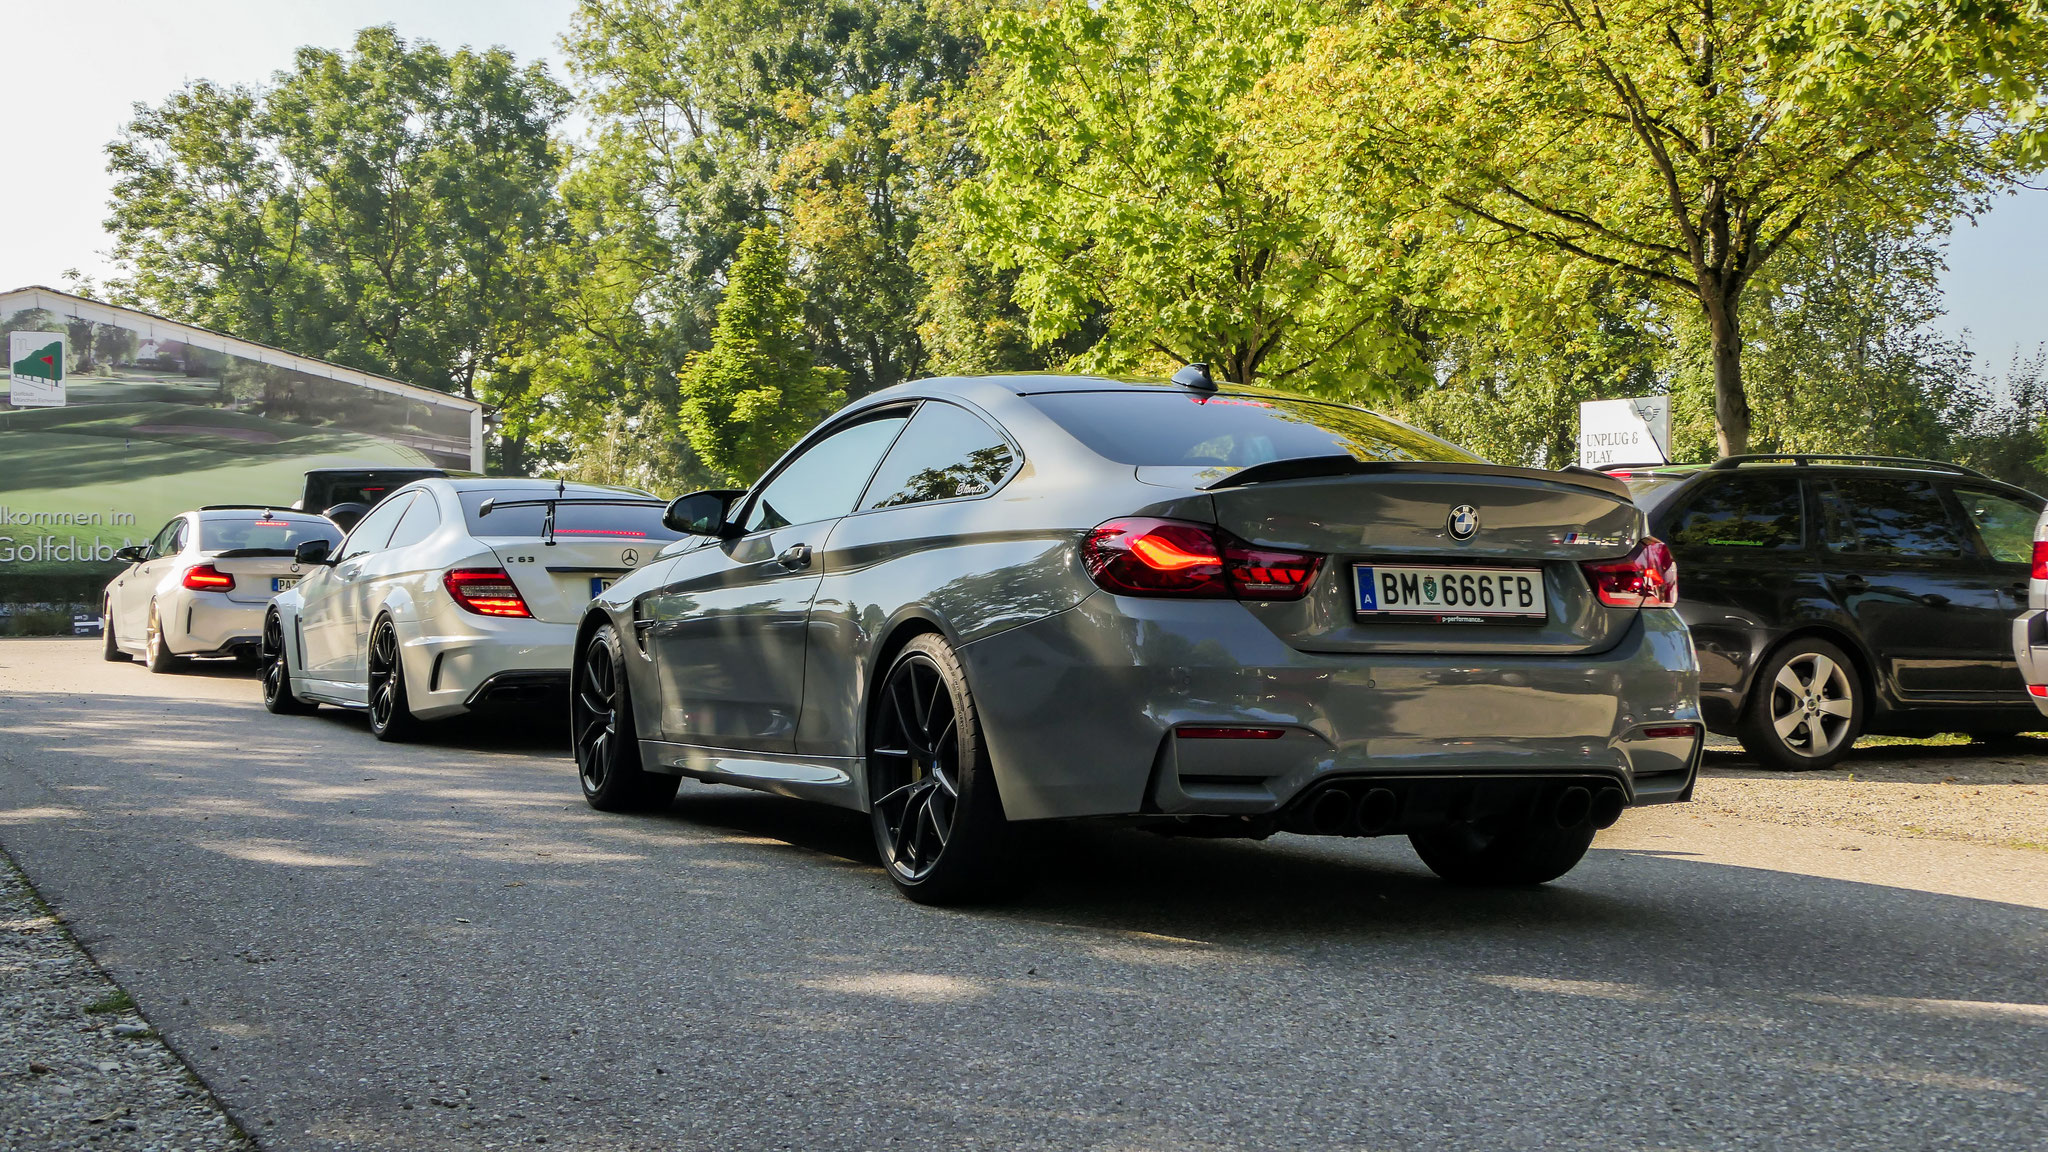 BMW M4 CS - BM-666-FB (AUT)